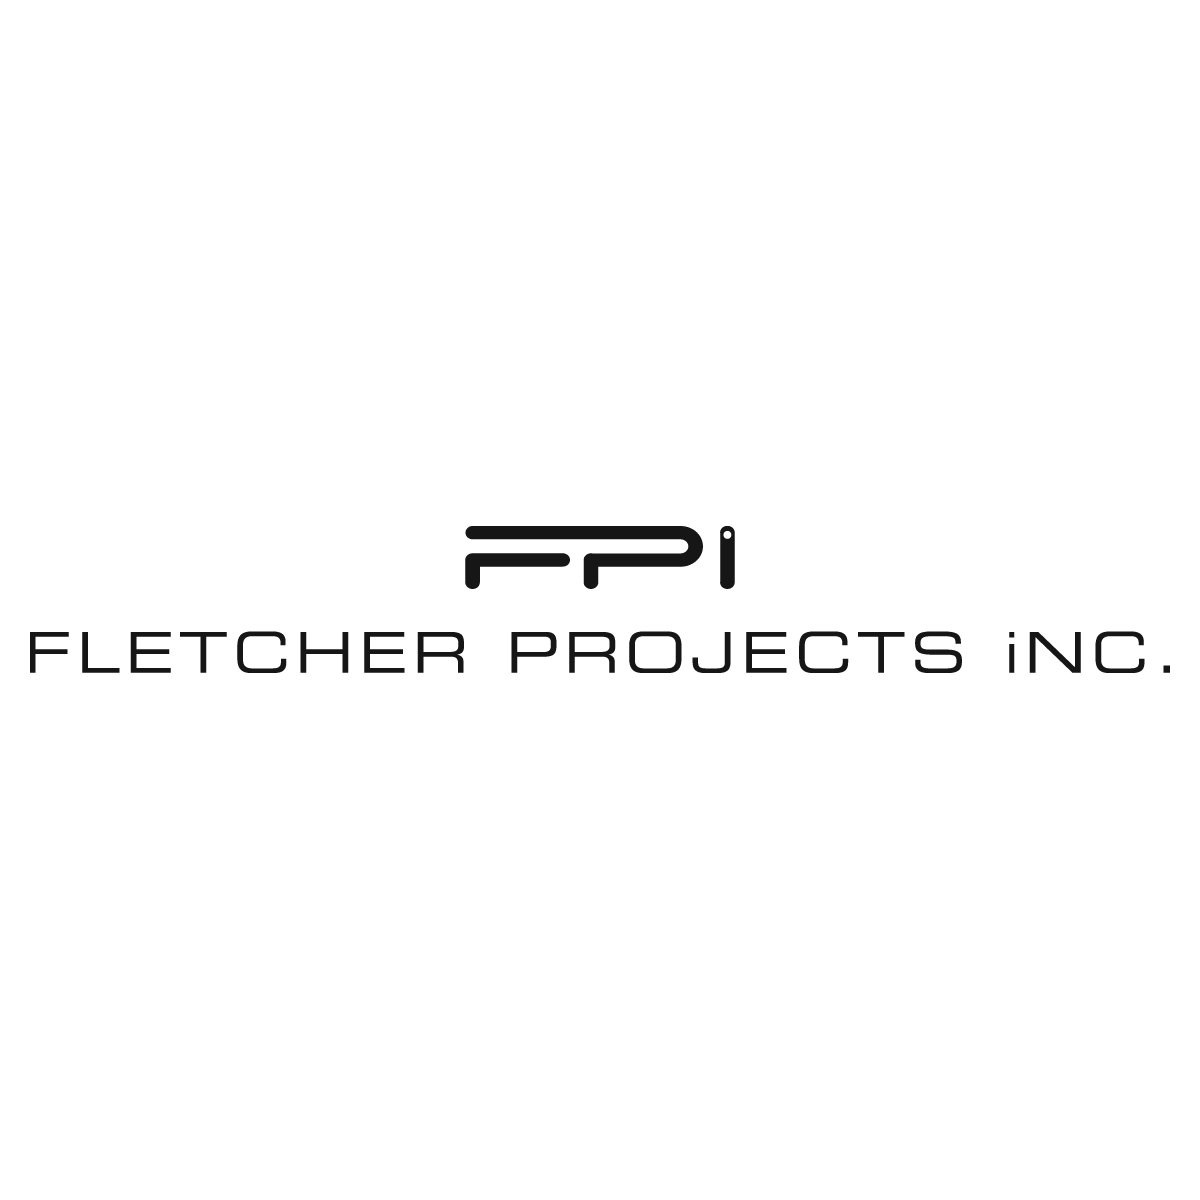 Fletcher Projects (Electrical Infrastructure Design)